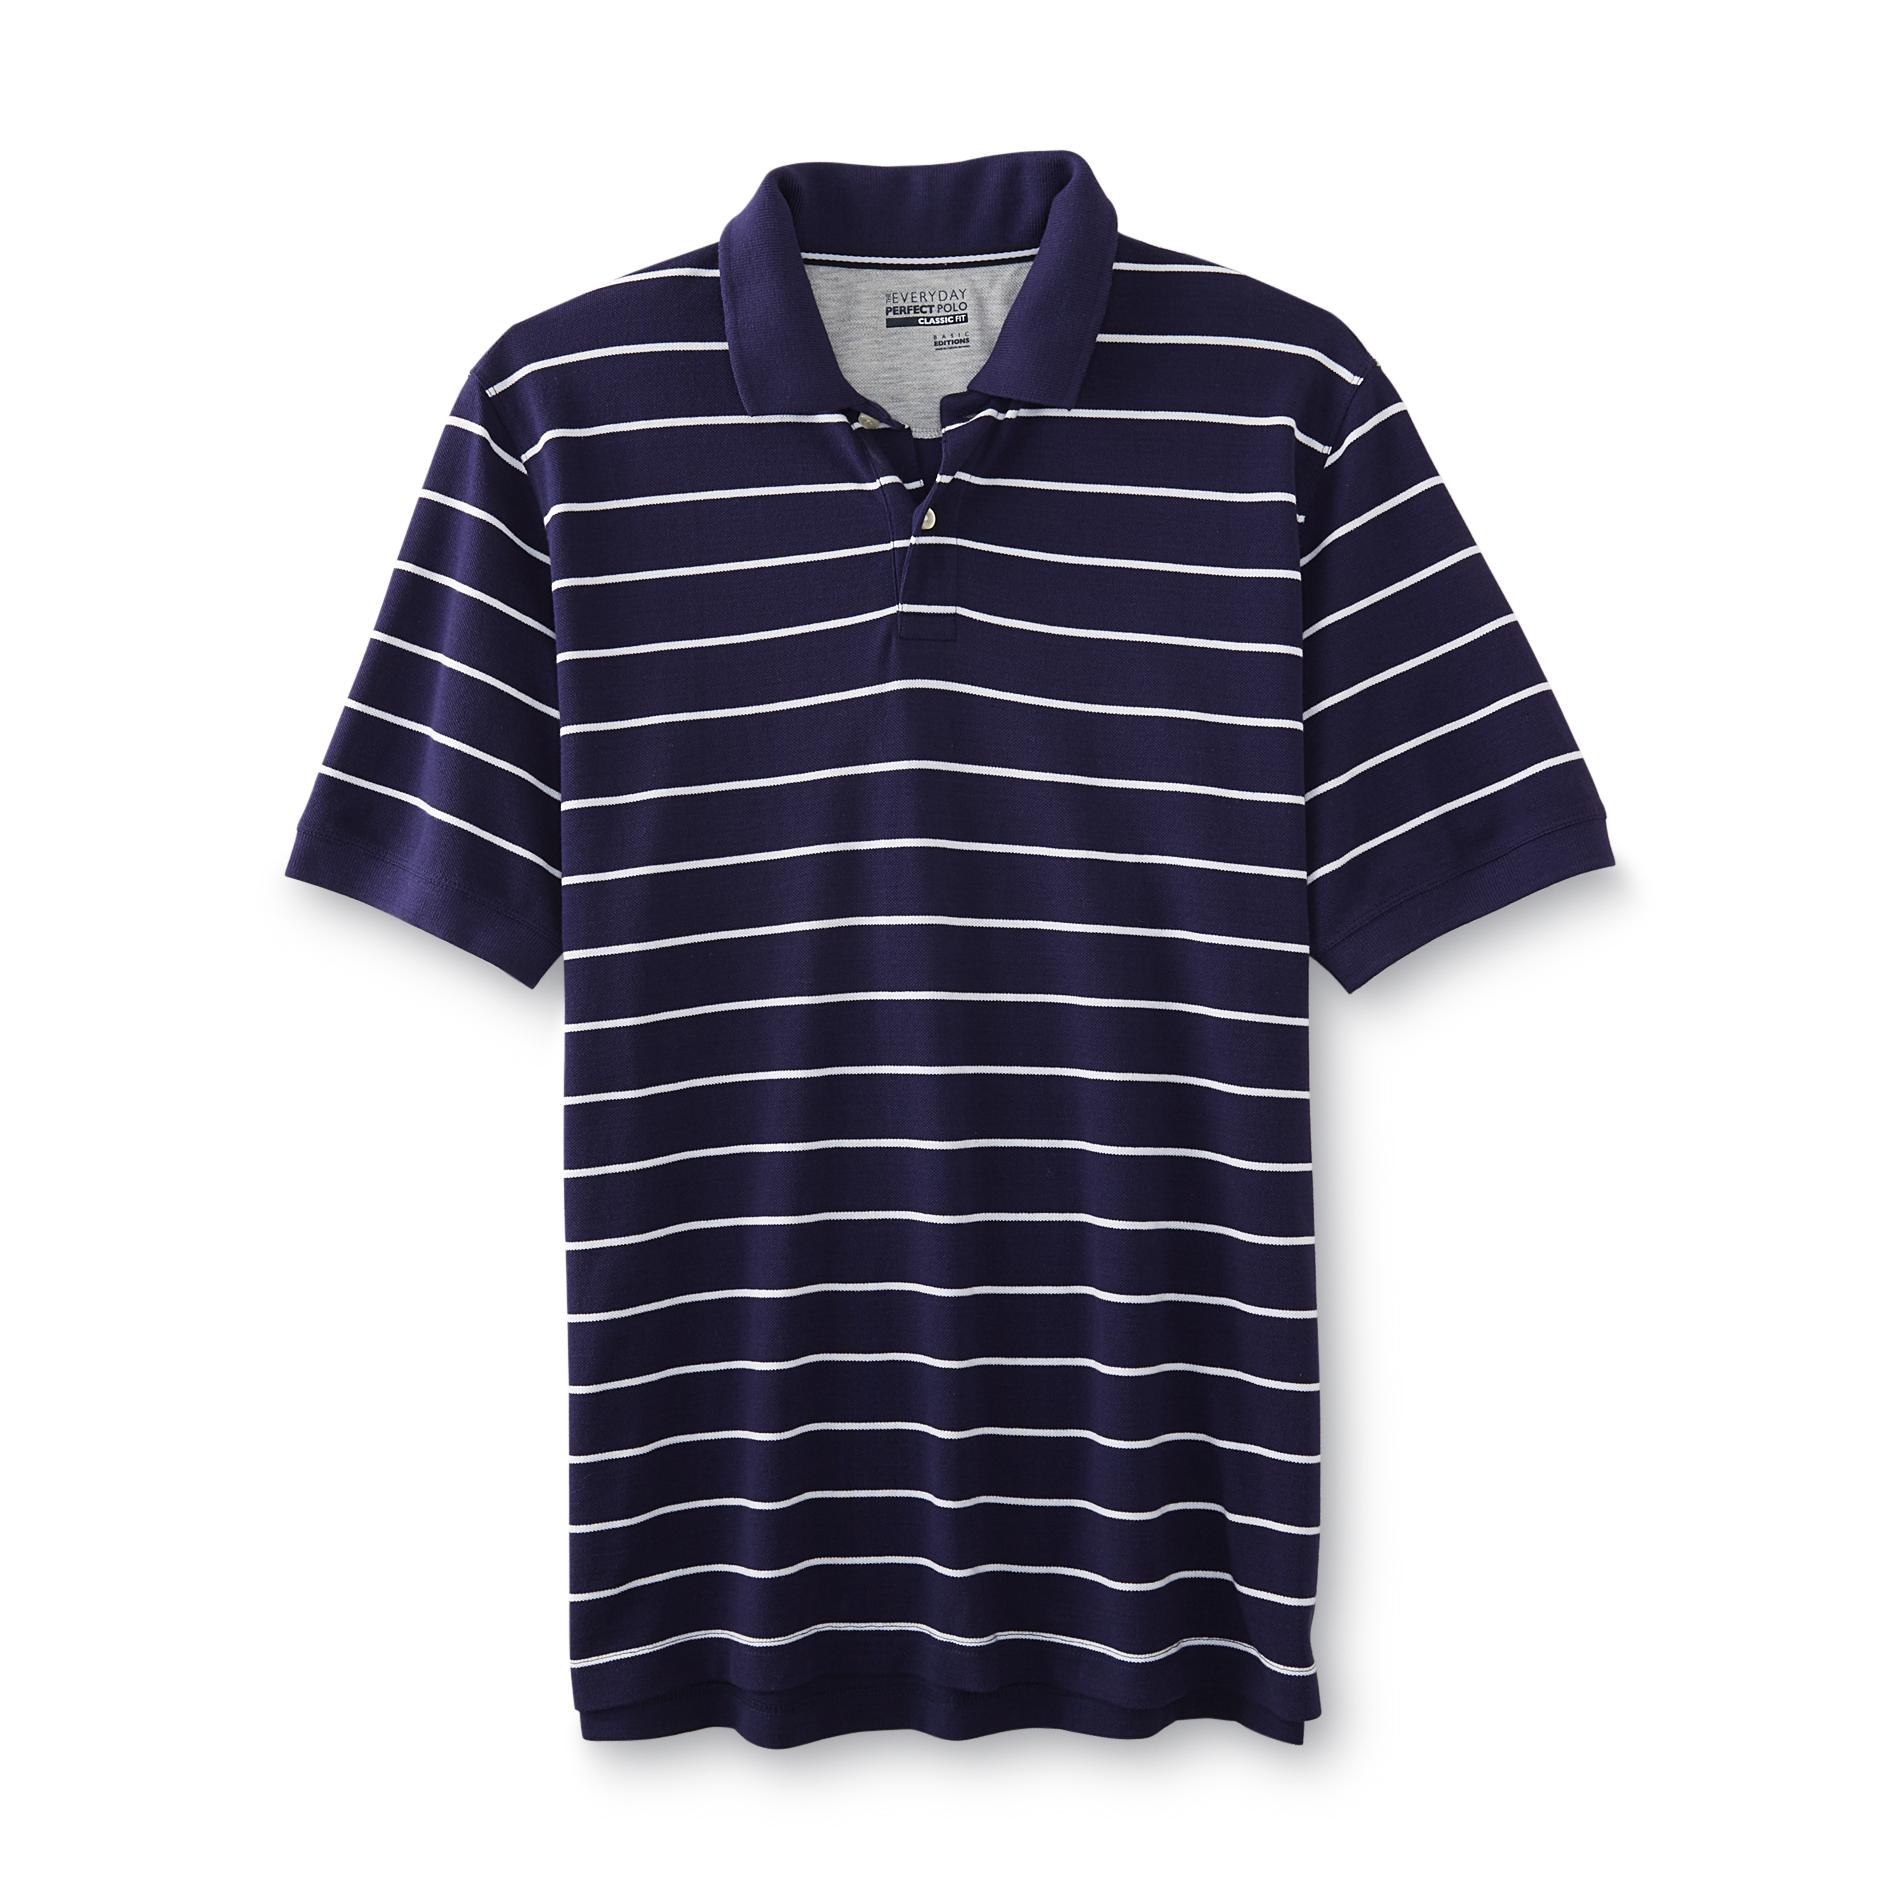 Men's Everyday Perfect Polo Shirt - Striped